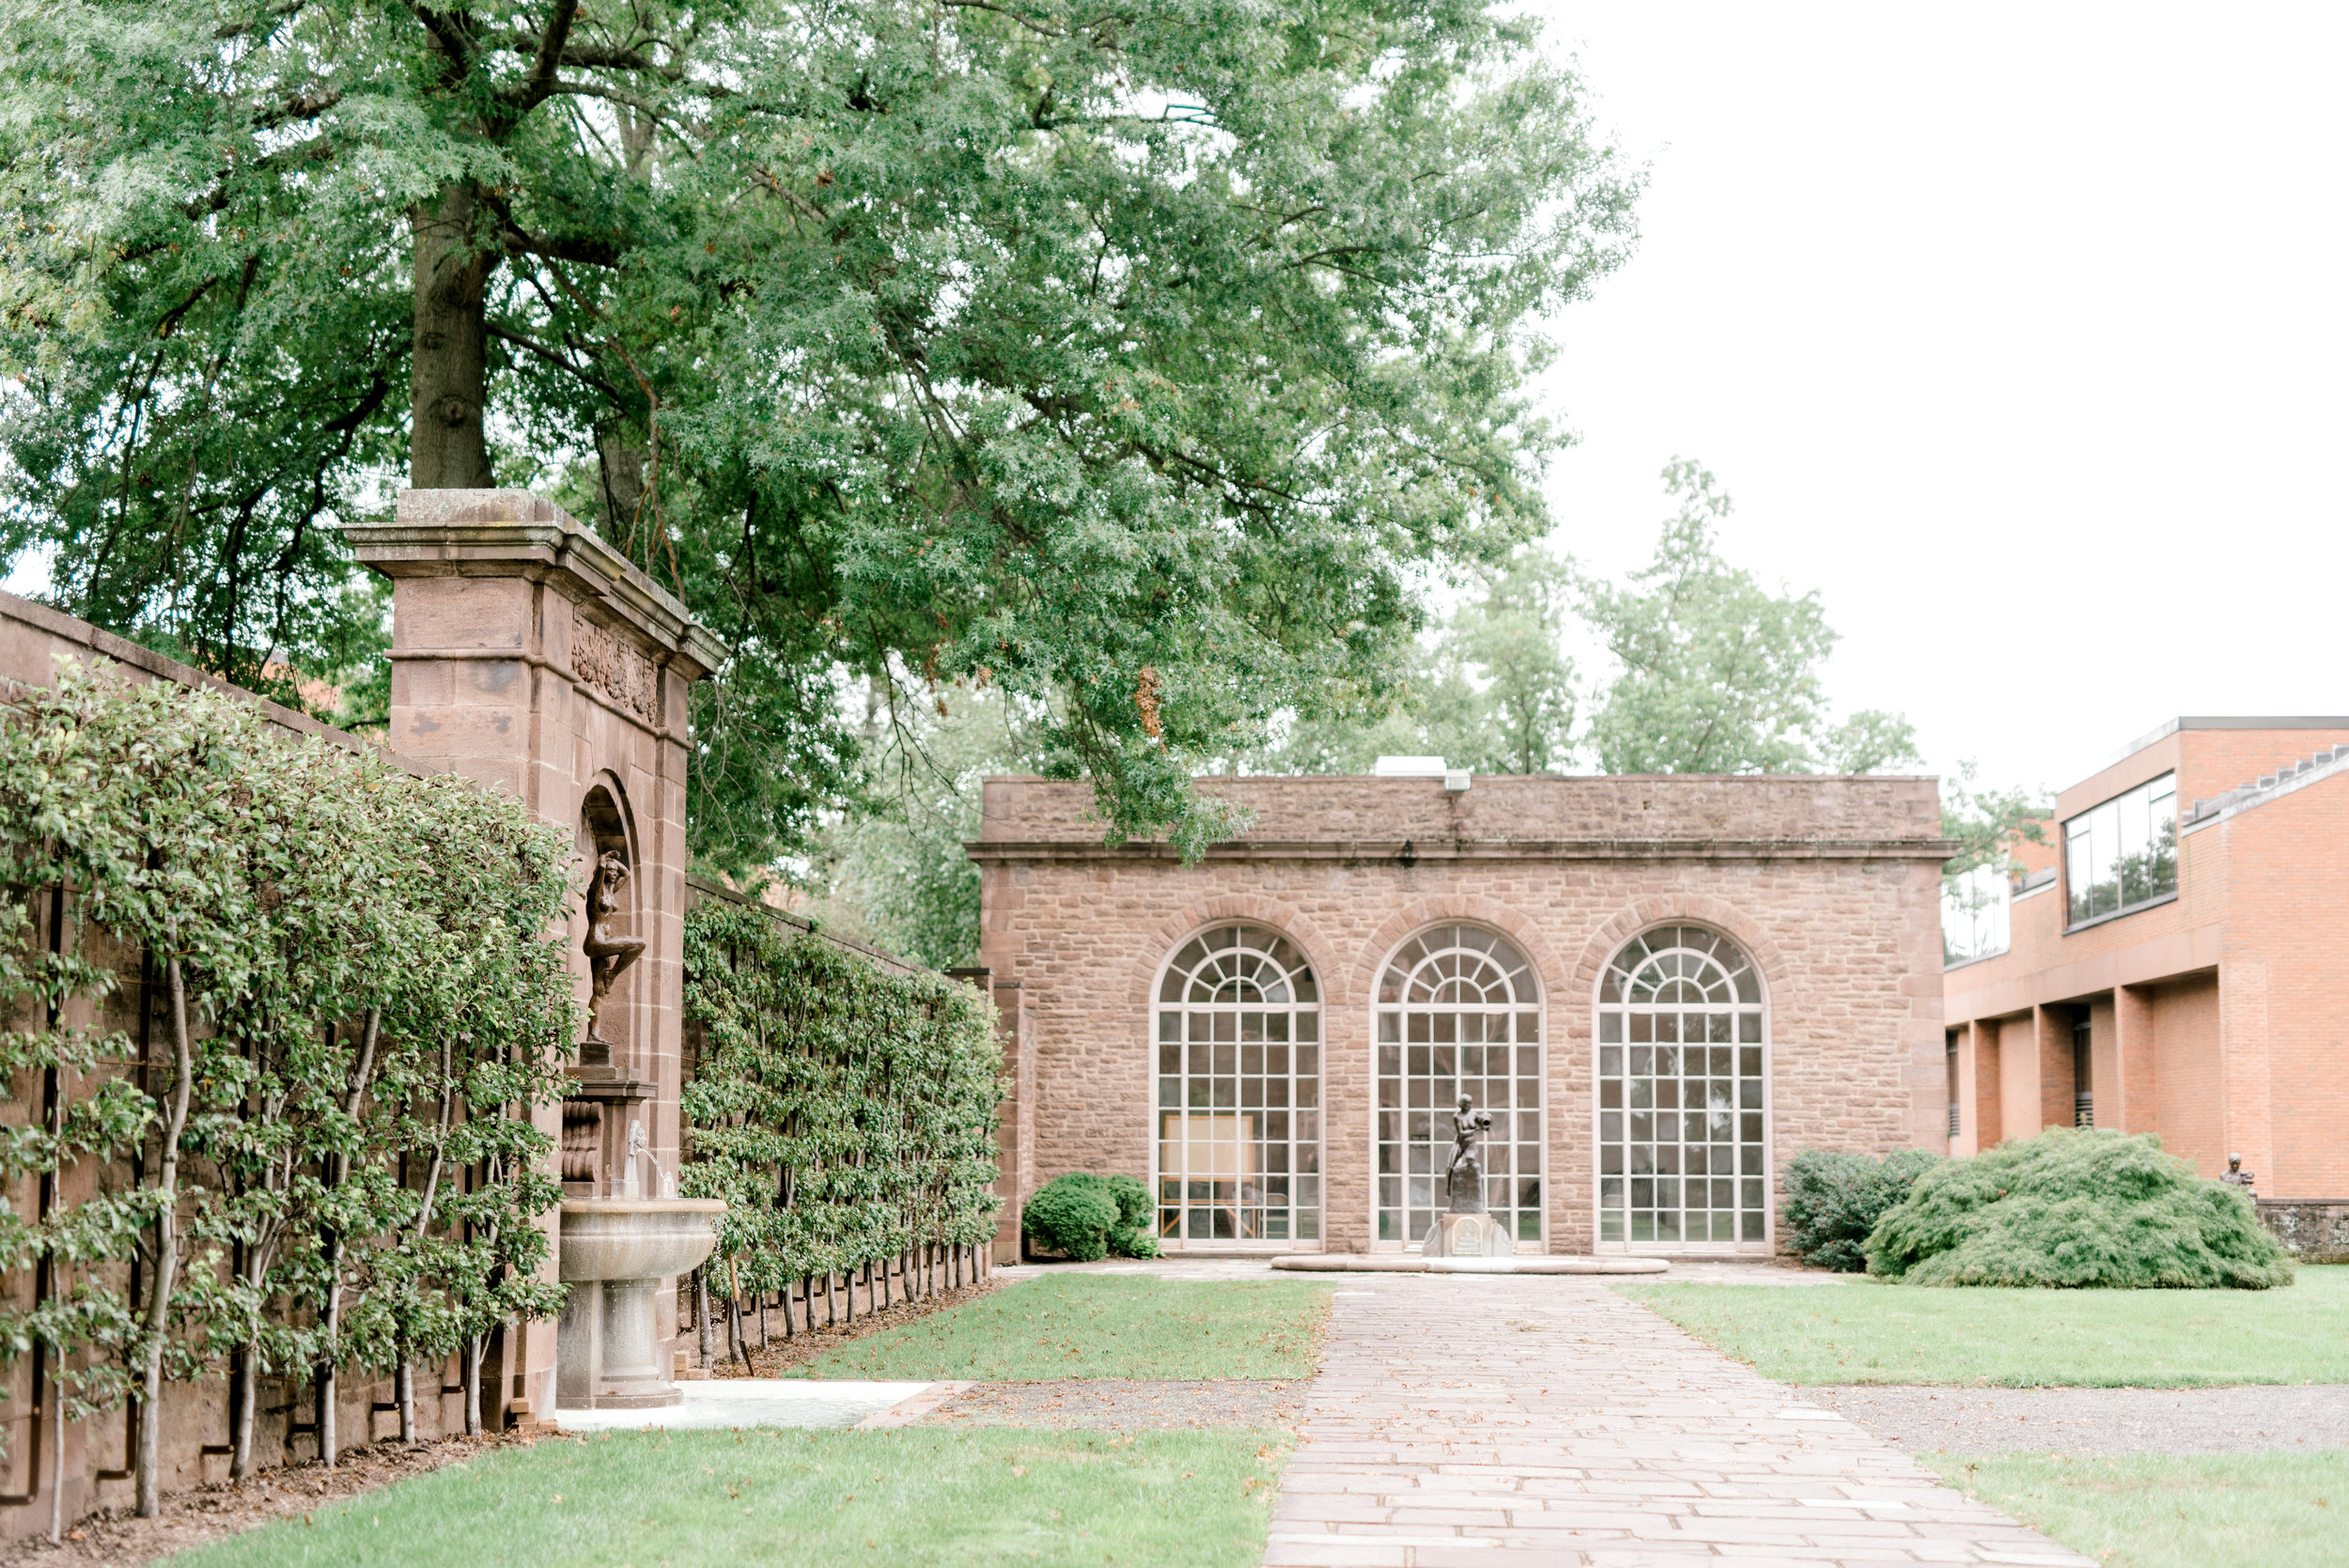 We love the elegant architecture that brings us right to France from this bright boho chic Tyler Gardens wedding in Bucks County